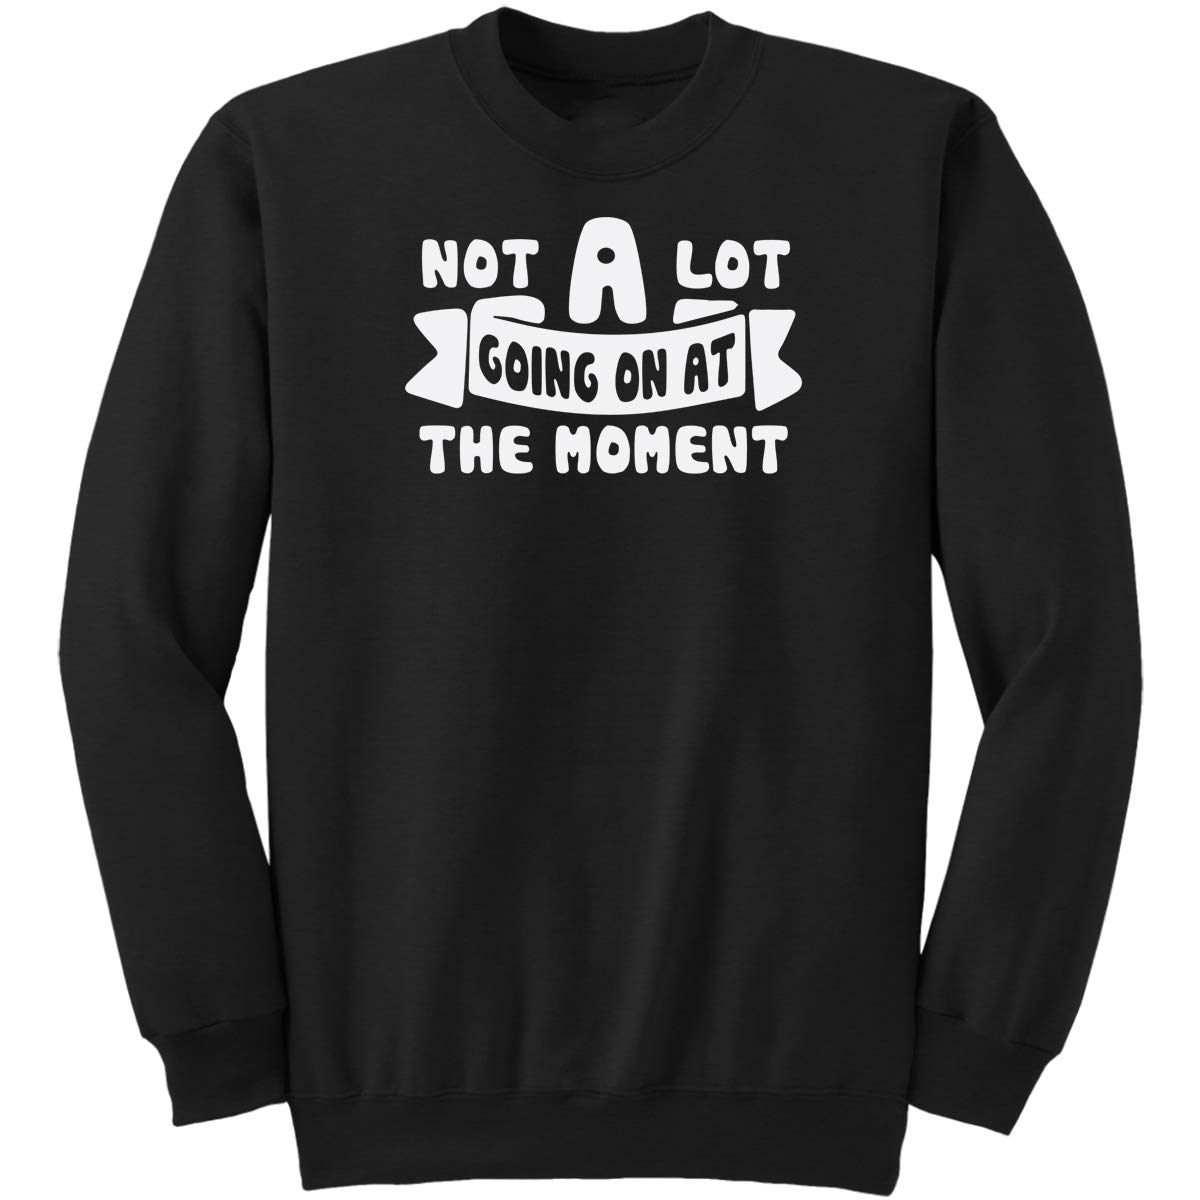 Not A Lot Going On at The Moment Funny Gifts Idea Jokes for Mens WOM Sweatshirt